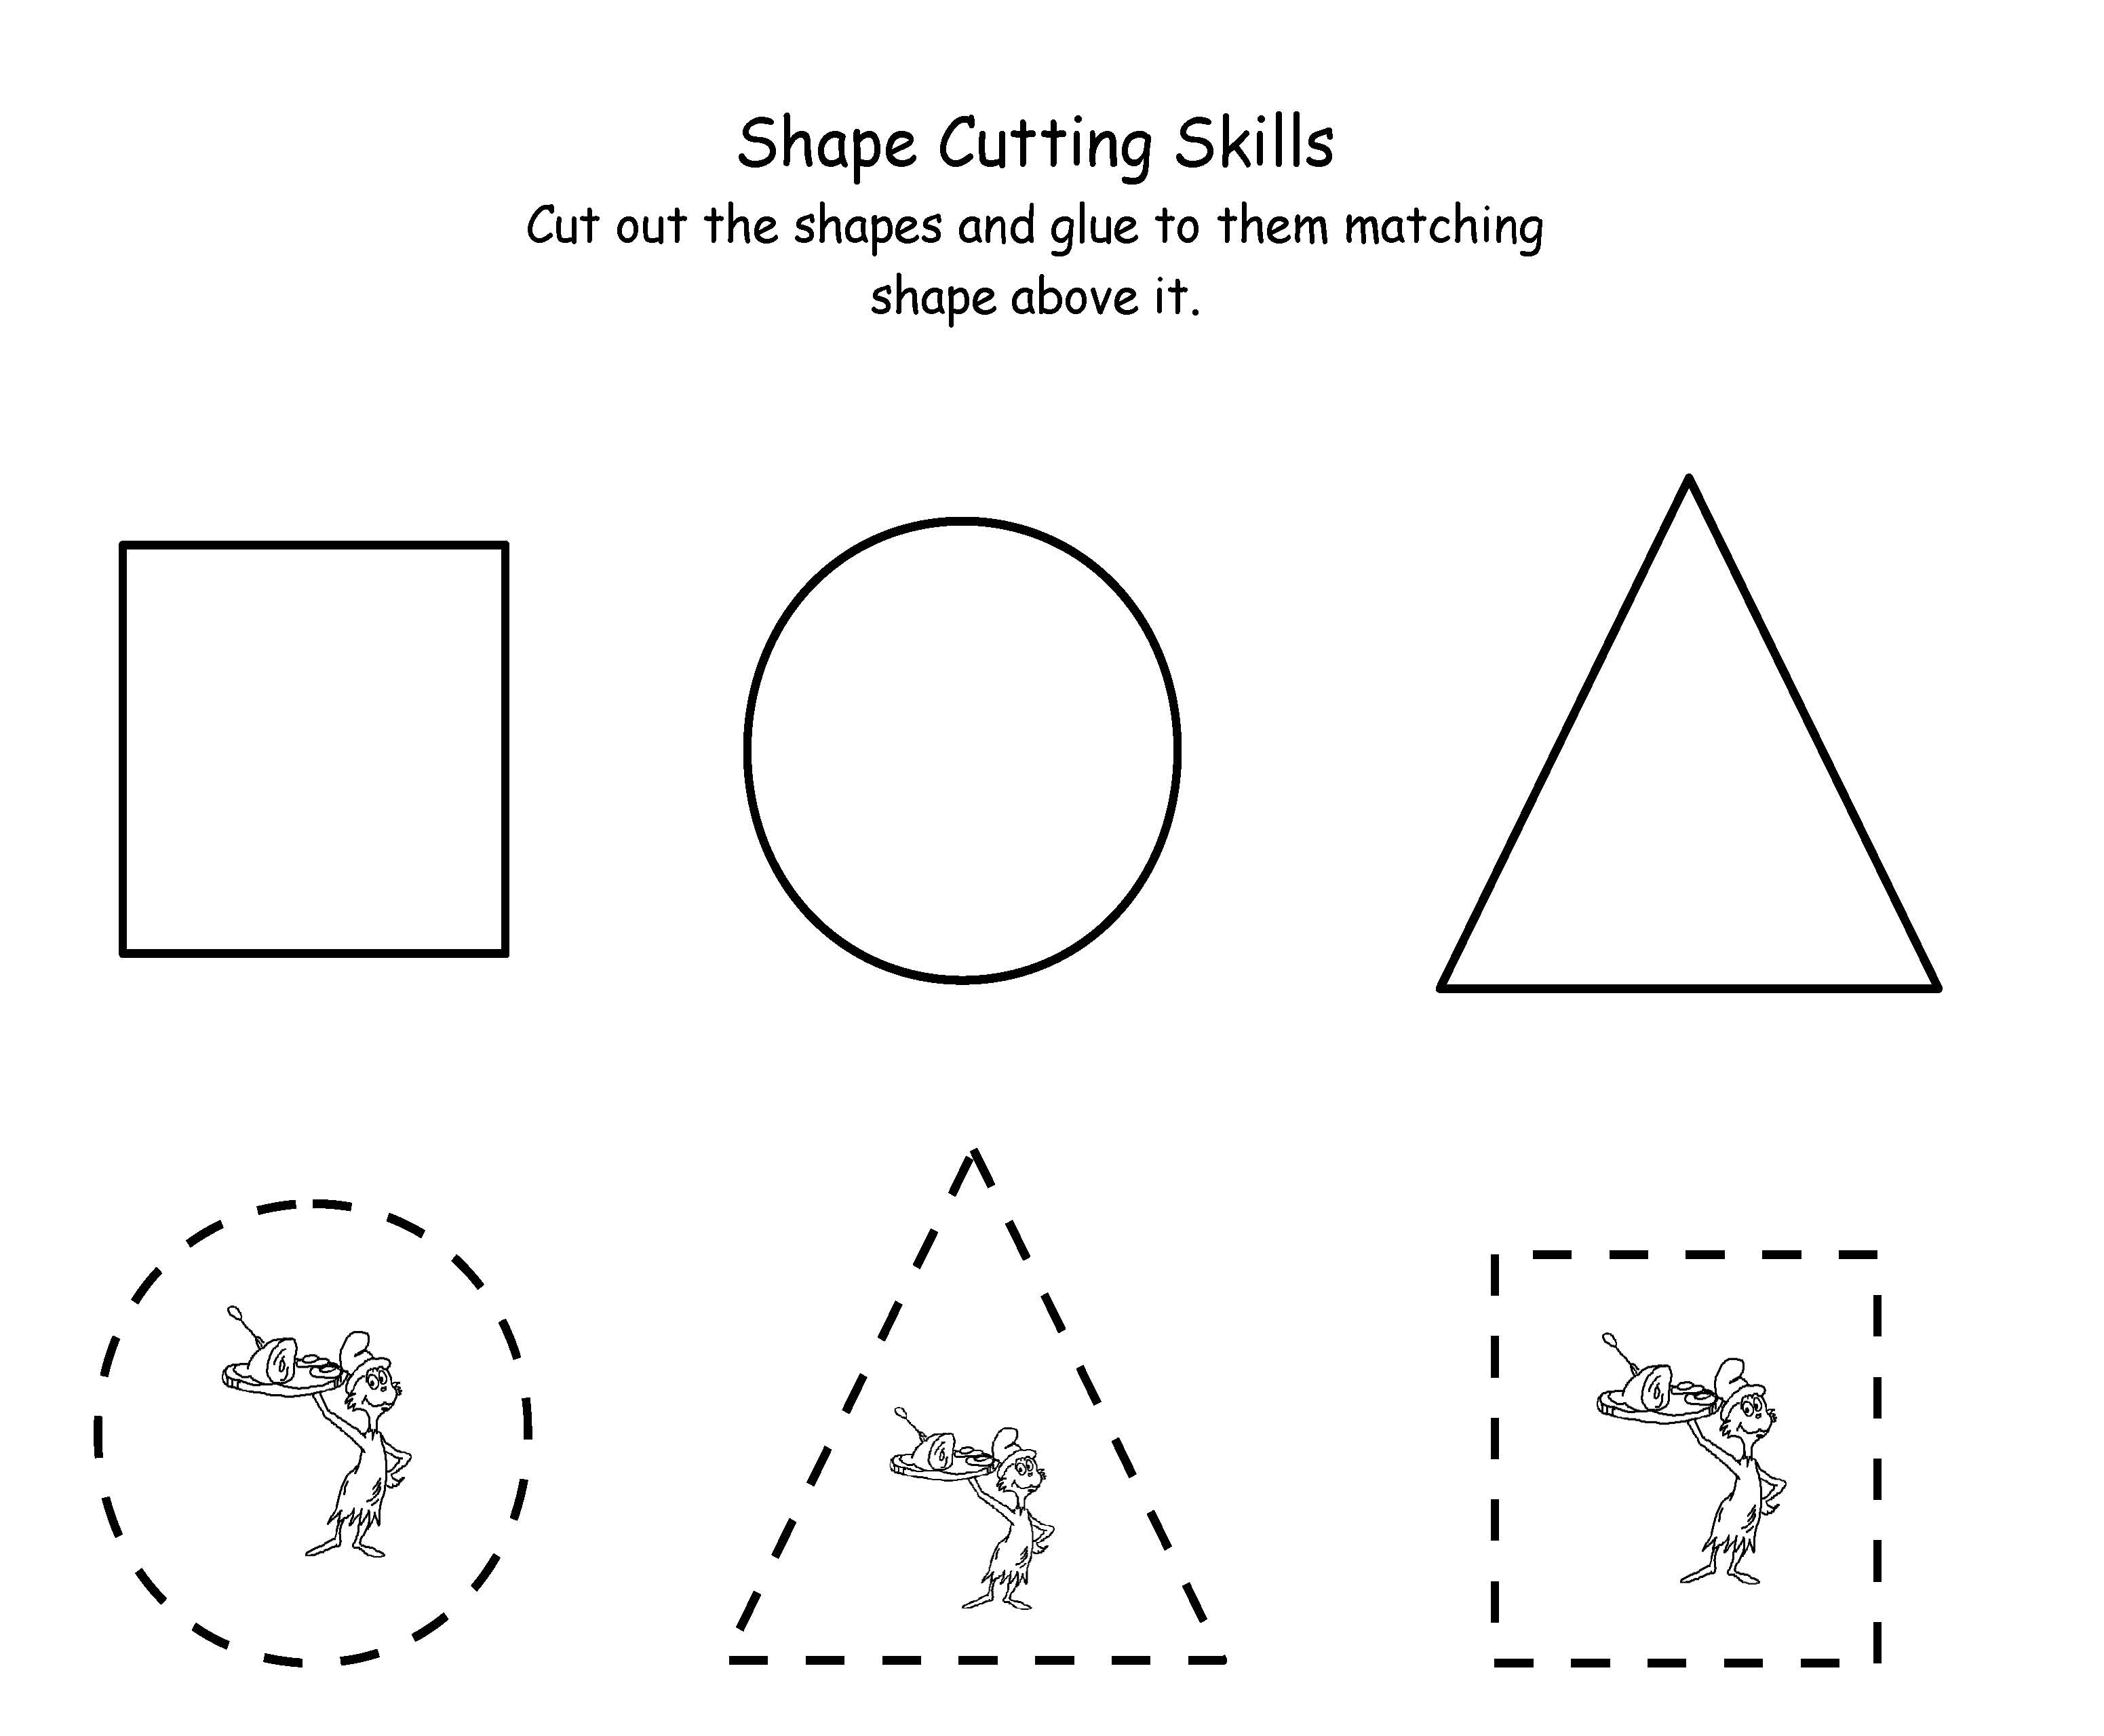 Hd Wallpapers 3 Dimensional Shapes Worksheets For Kindergarten Wallpaper High Qualityarbuy